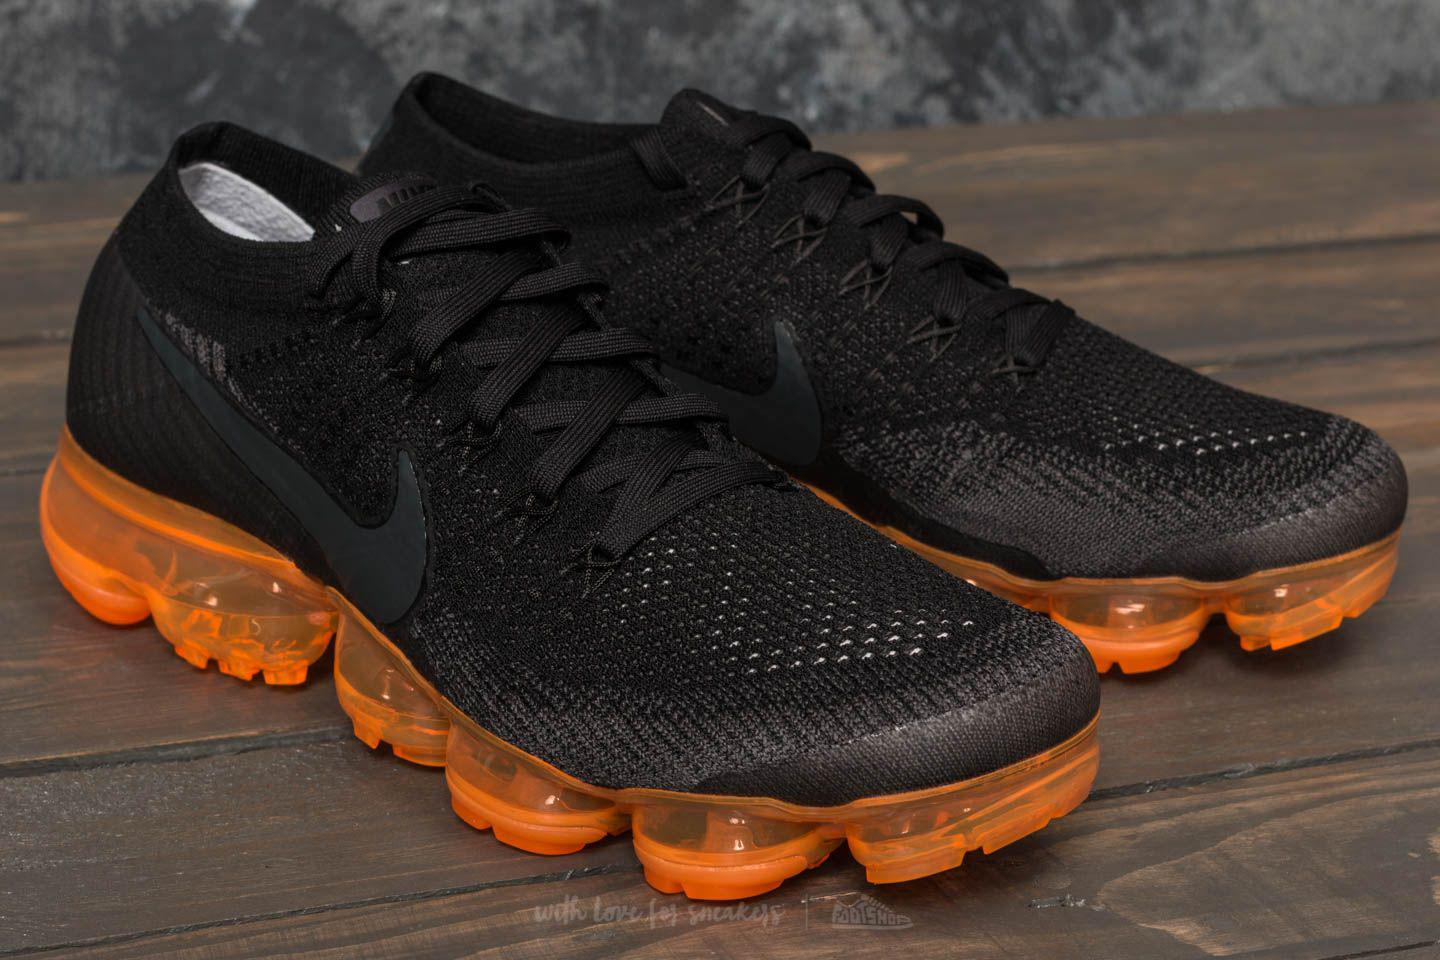 new style 9b11c d951c Lyst - Nike Air Vapormax Flyknit Black Pop Anthracite  Black  Rush ...